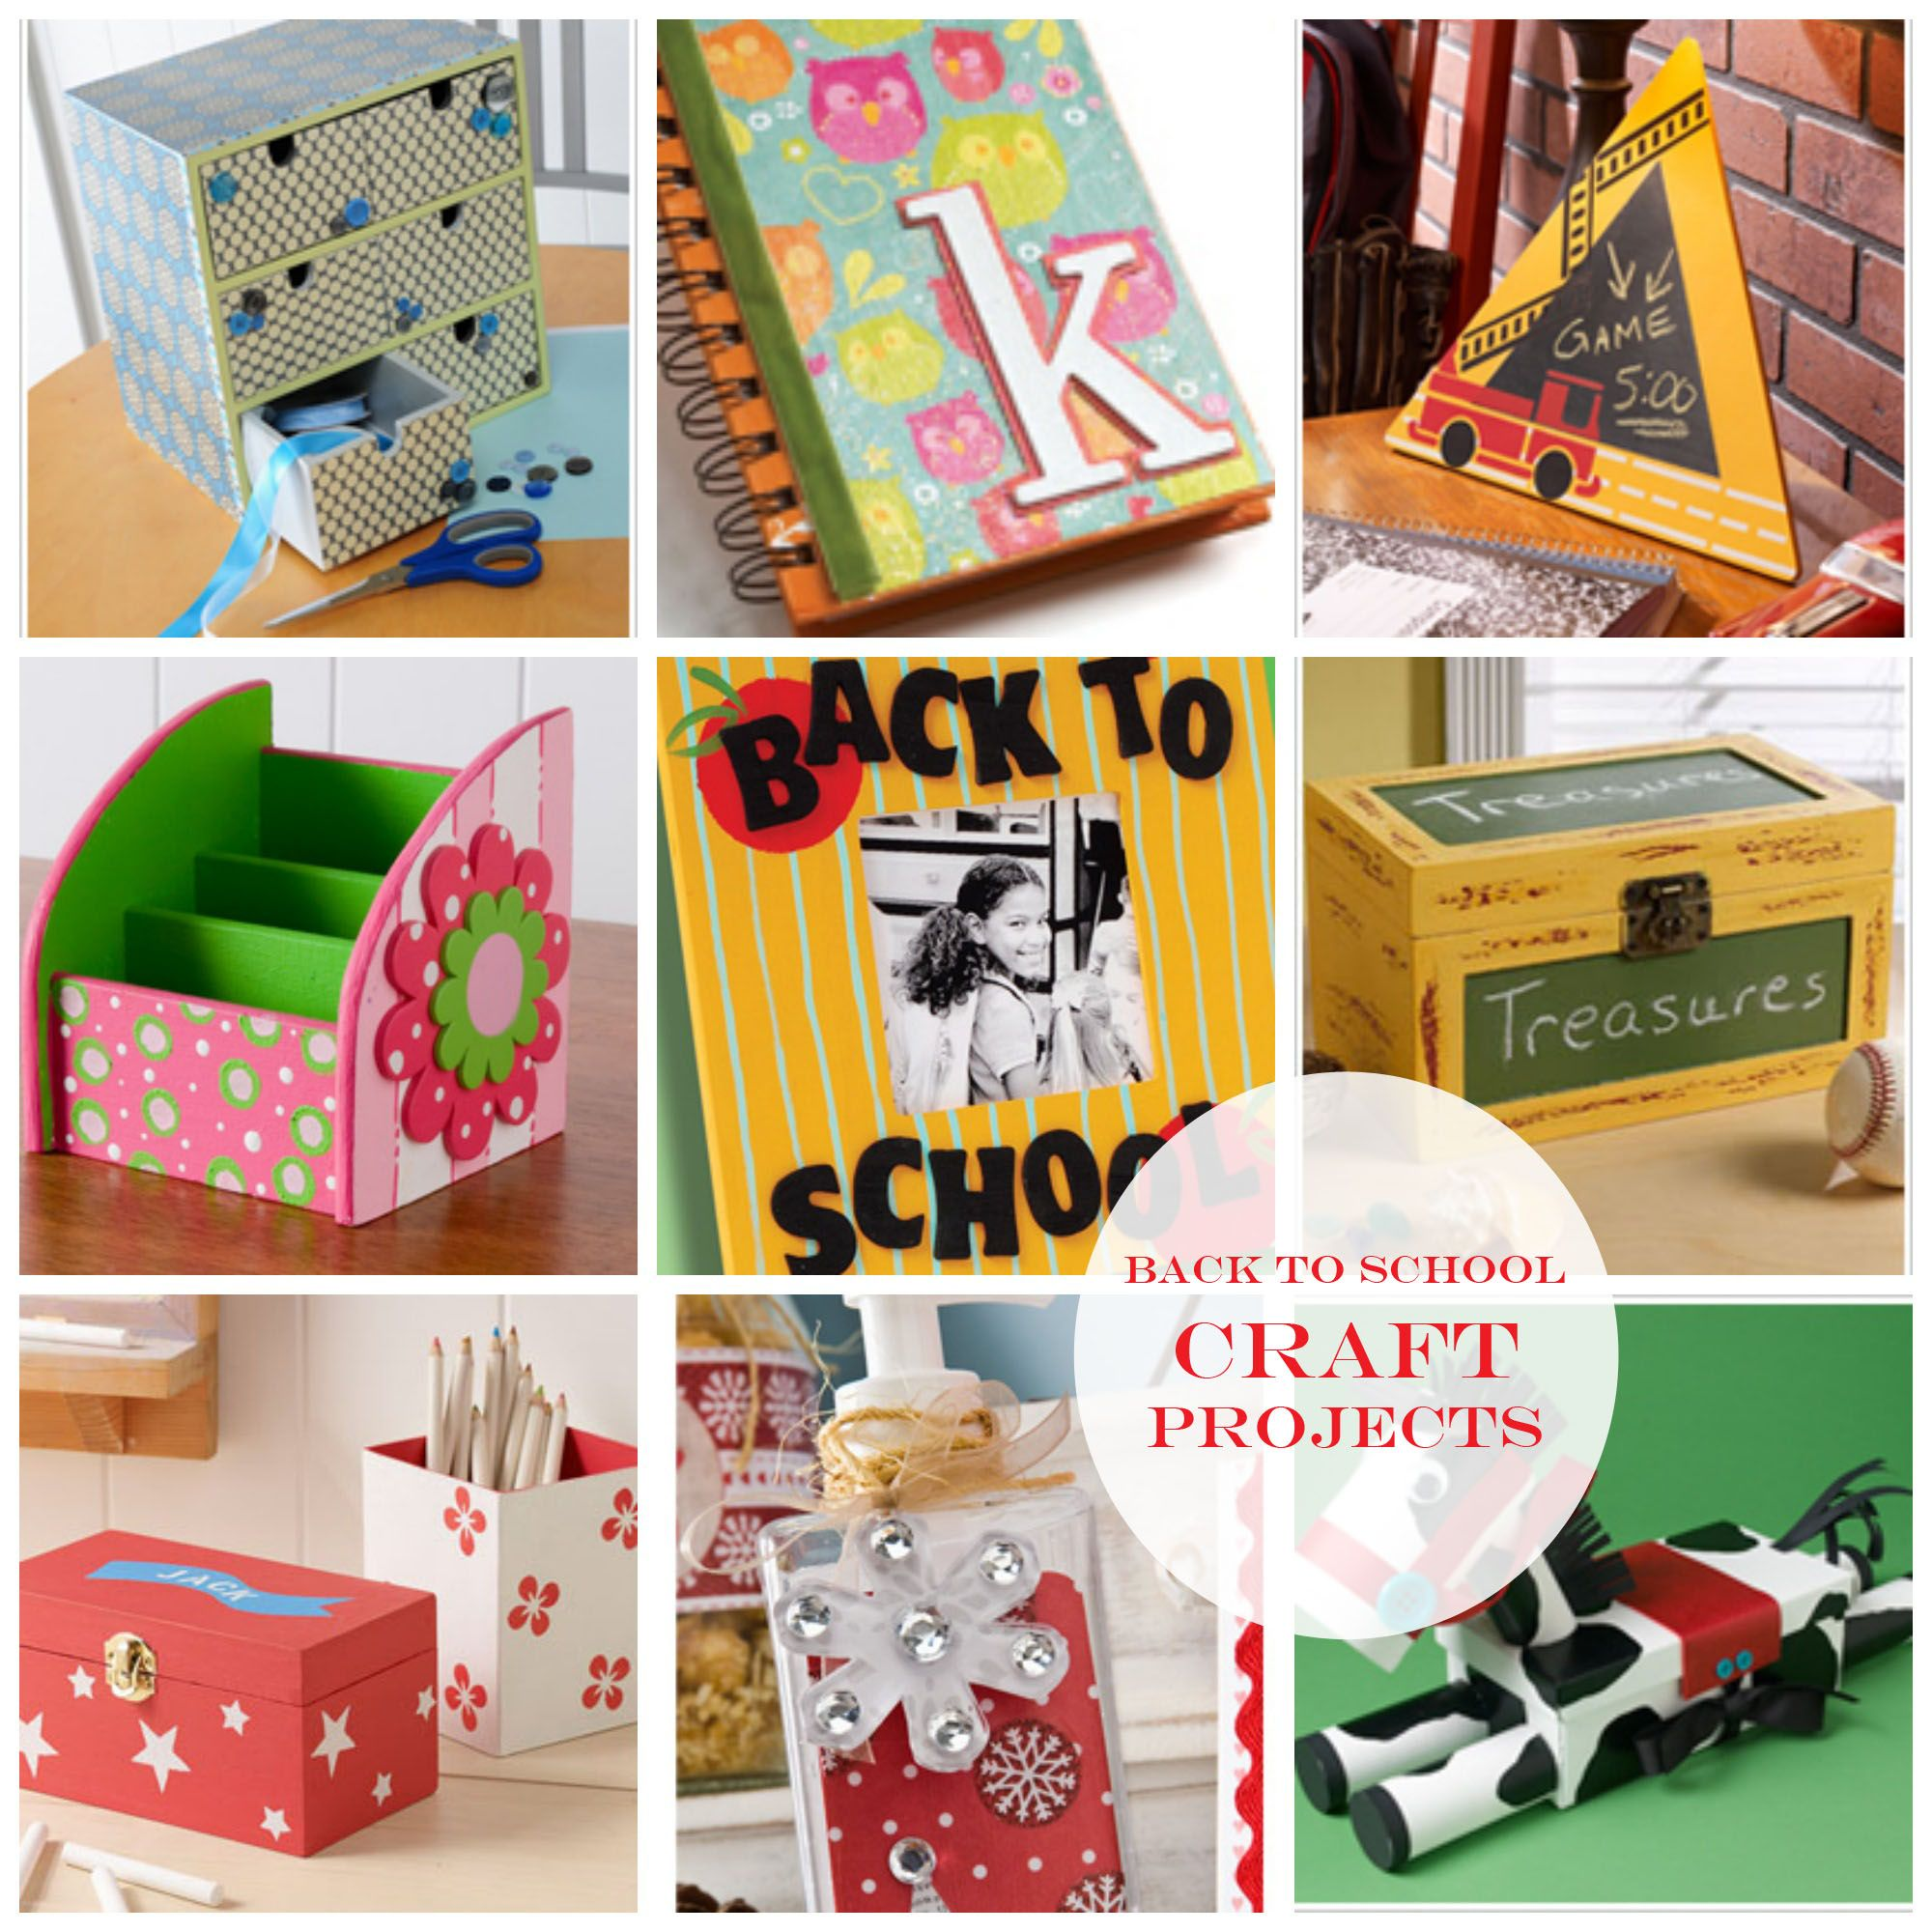 Back To School Craft Project Ideas Diy Crafts Plaidcrafts Craft